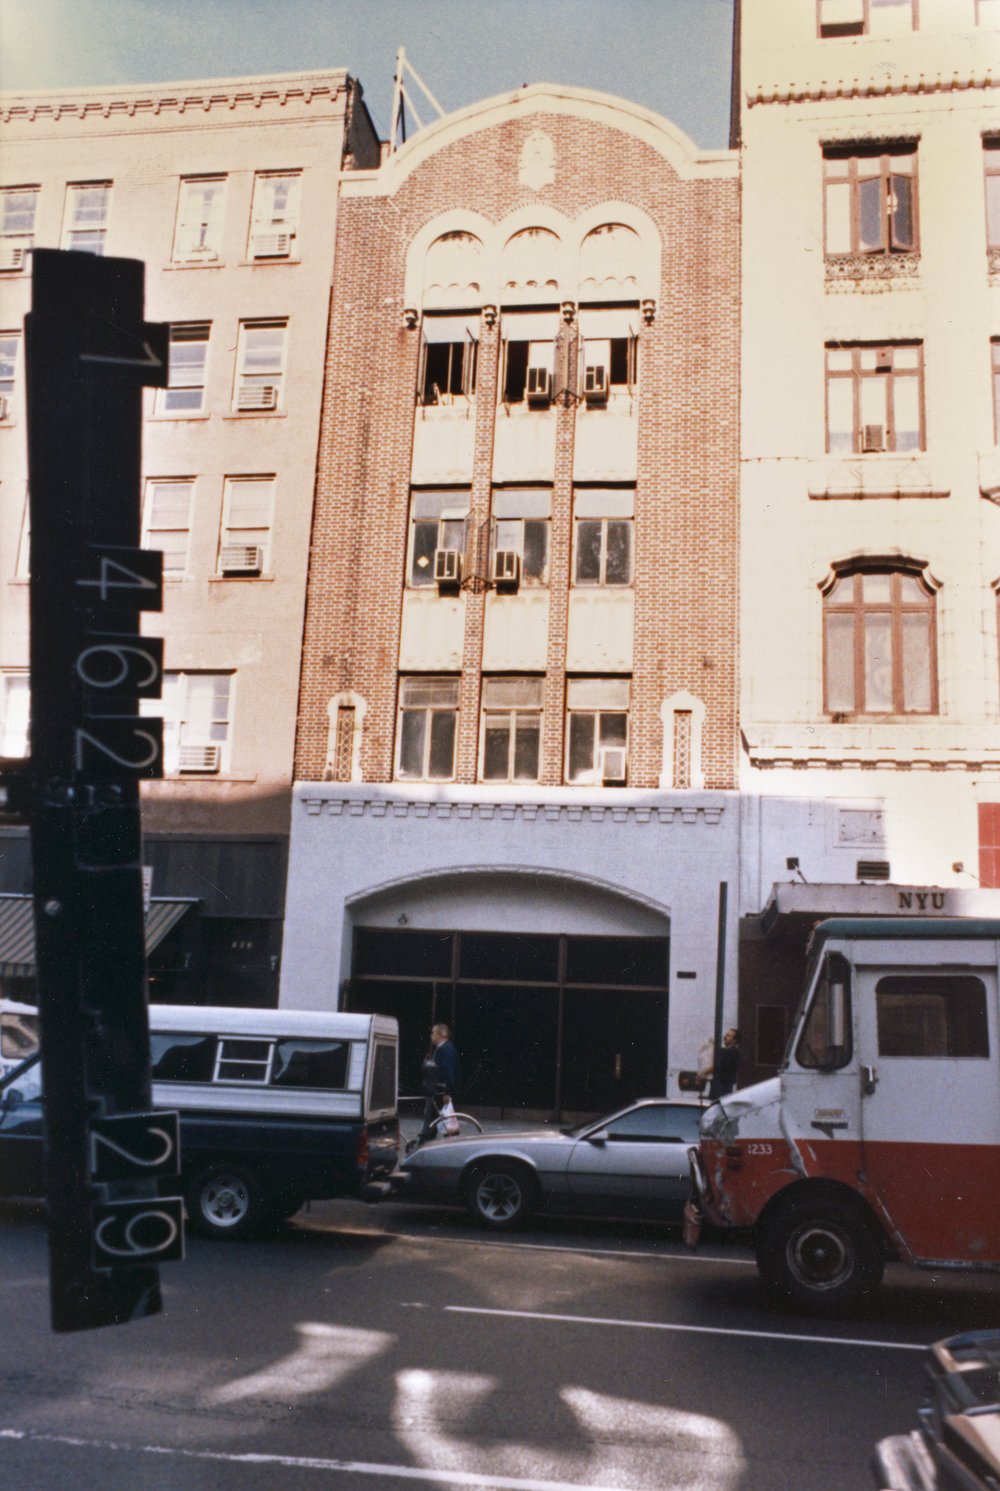 105 Second Avenue, ca. 1985. DOF Tax Photo Collection, NYC Municipal Archives.